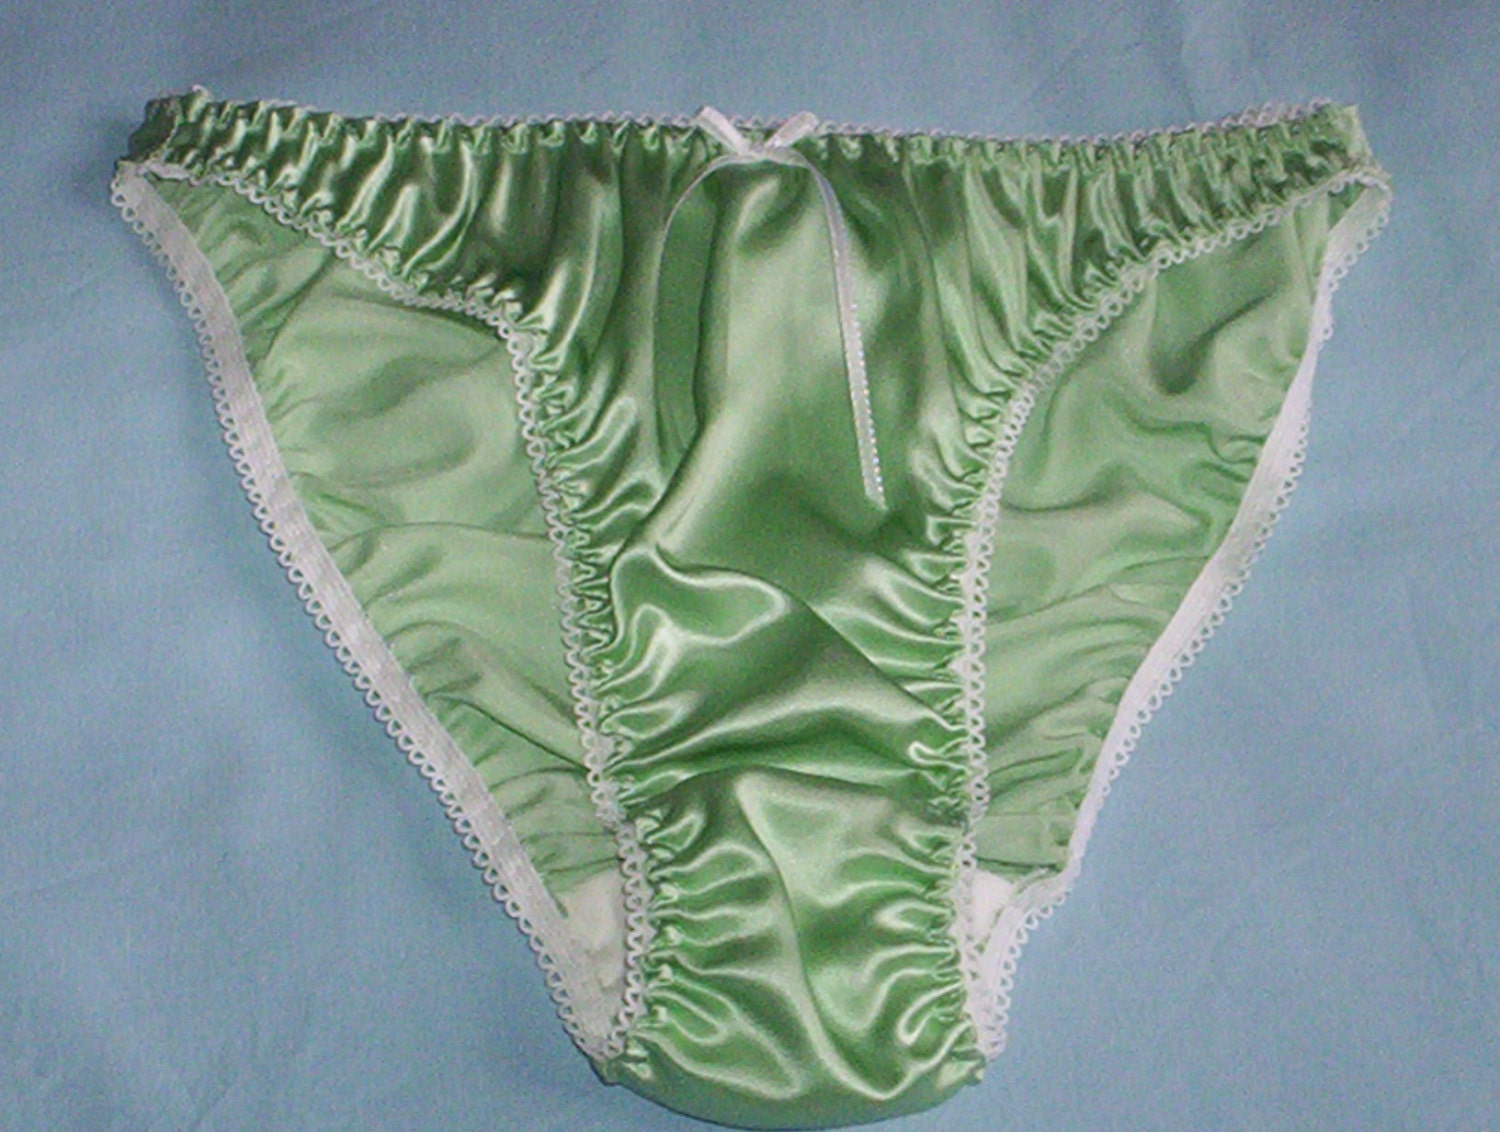 Mint green silk satin panties available in UK sizes 8 20  000dfb22a5db